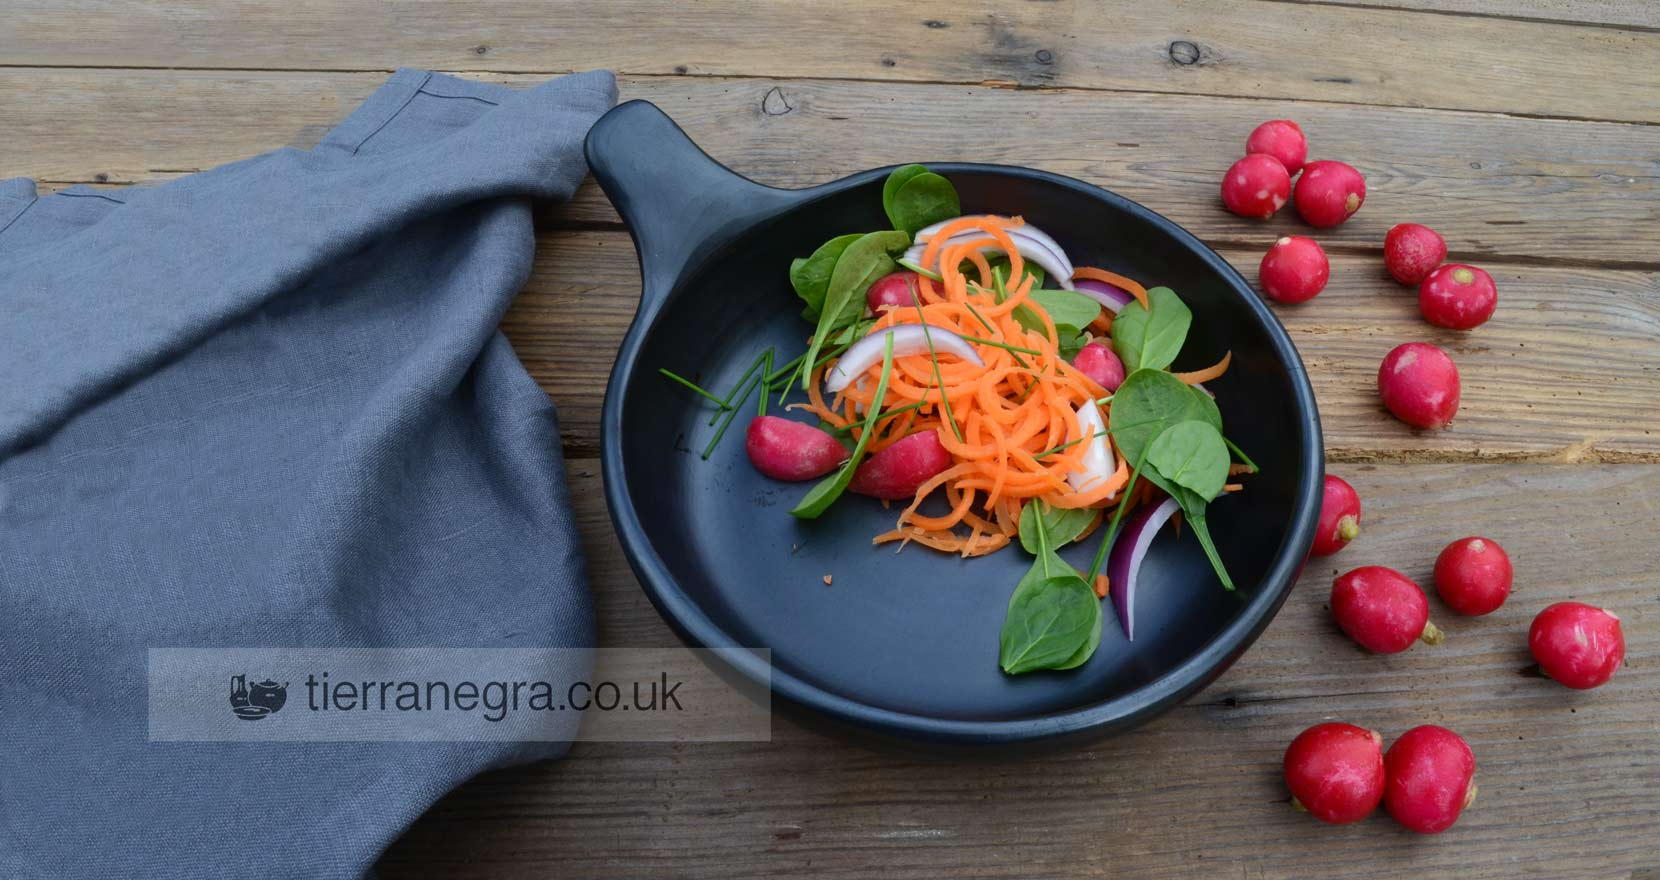 The perfect foil for colourful foods